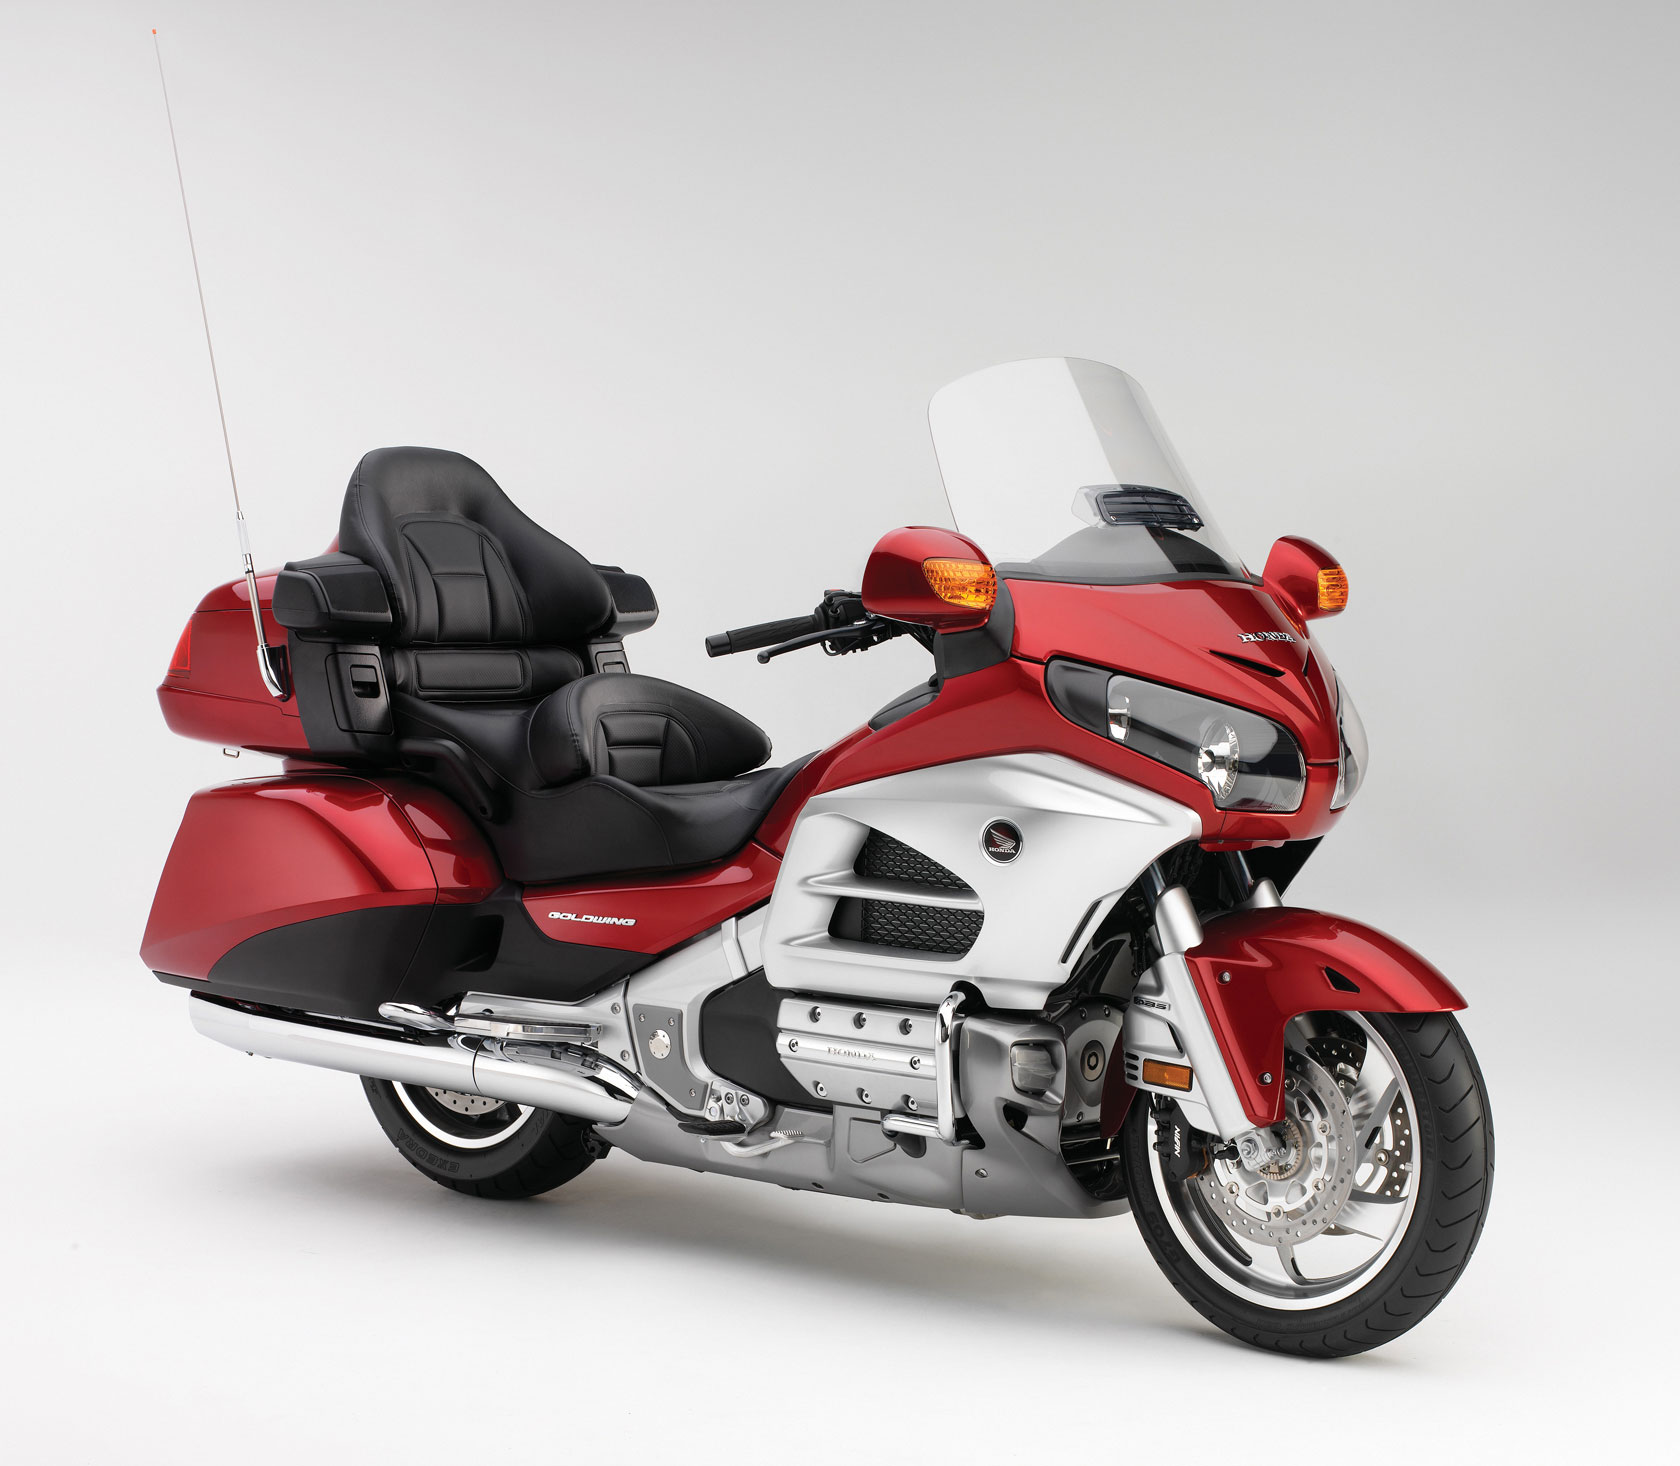 honda gold wing 1800 фото